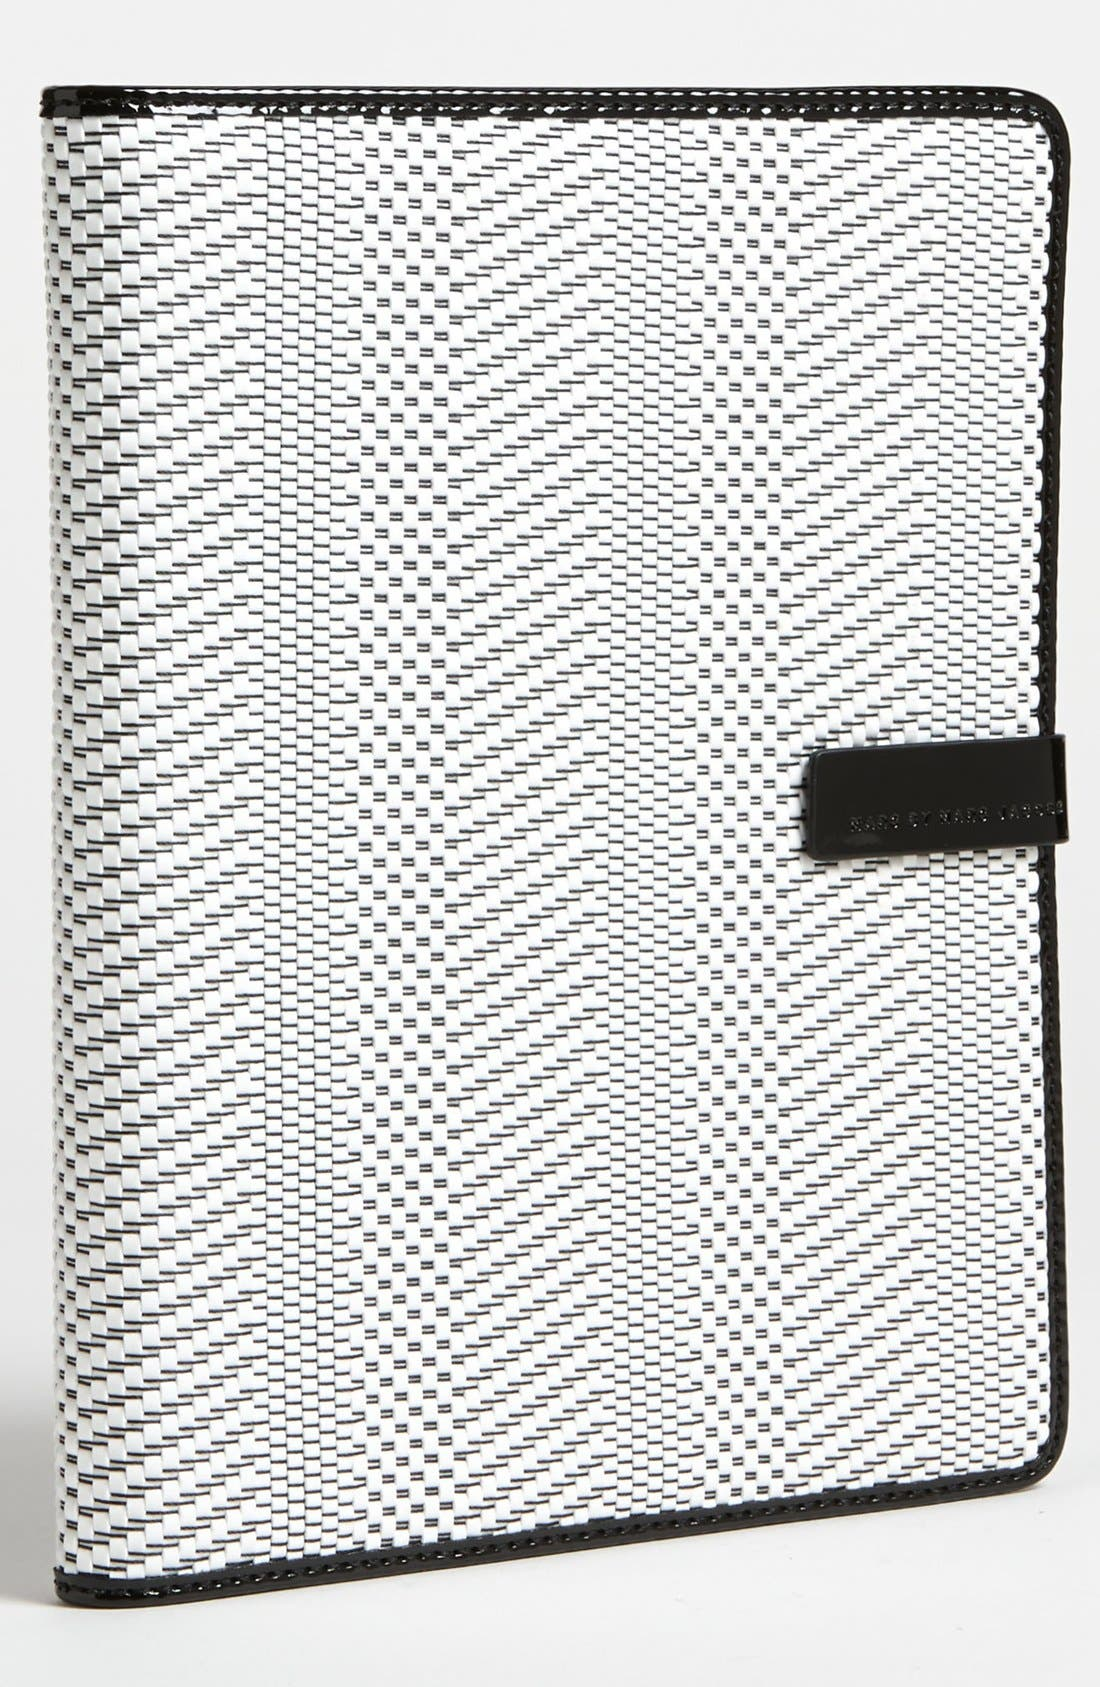 Main Image - MARC BY MARC JACOBS 'Wild Card - Shiny Straw' iPad Case